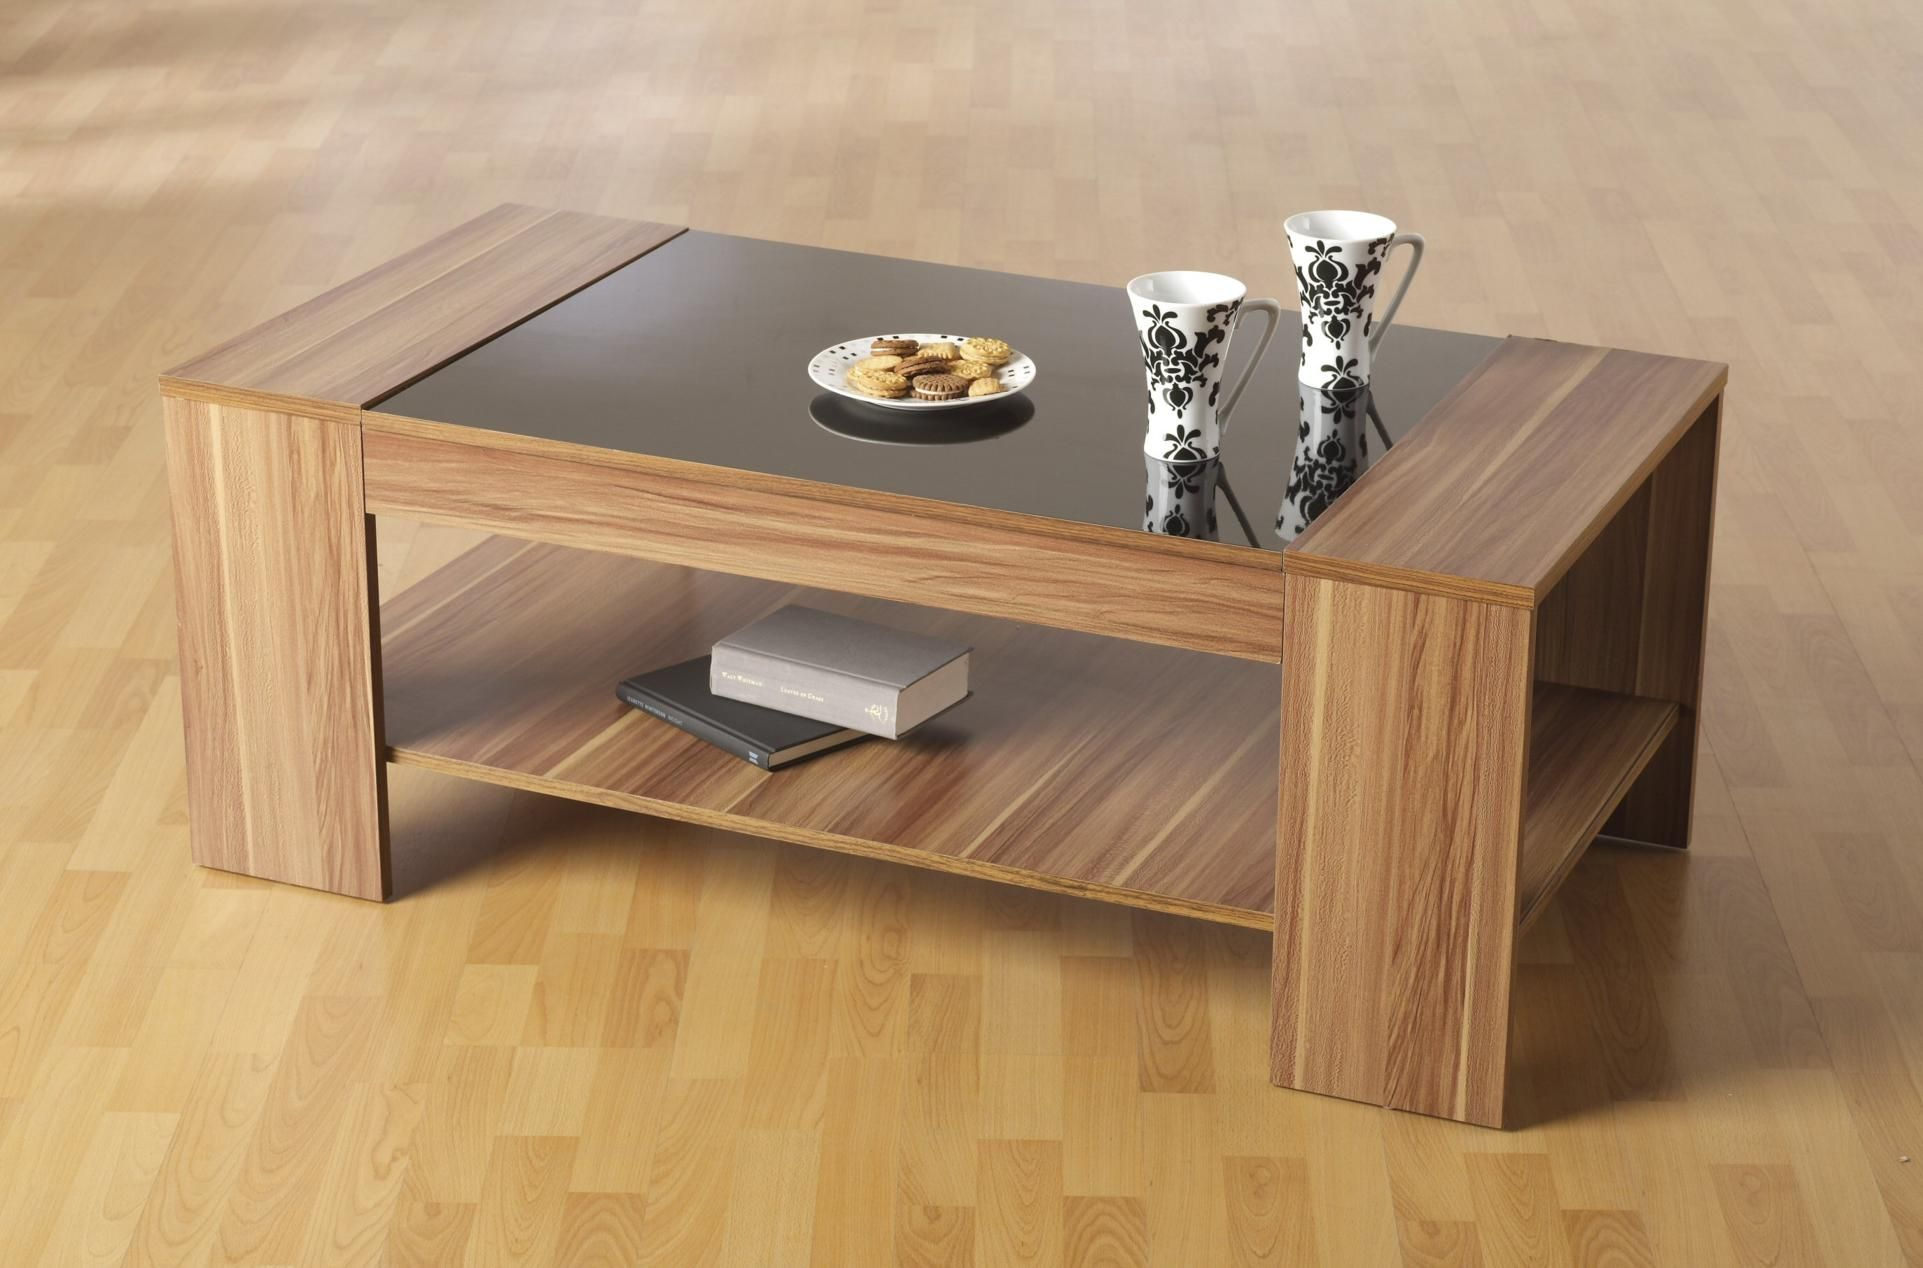 Hollywood coffee table for home living room with natural wood buy seconique hollywood walnut and high gloss coffee table from the uks leading online furniture and bed store geotapseo Choice Image